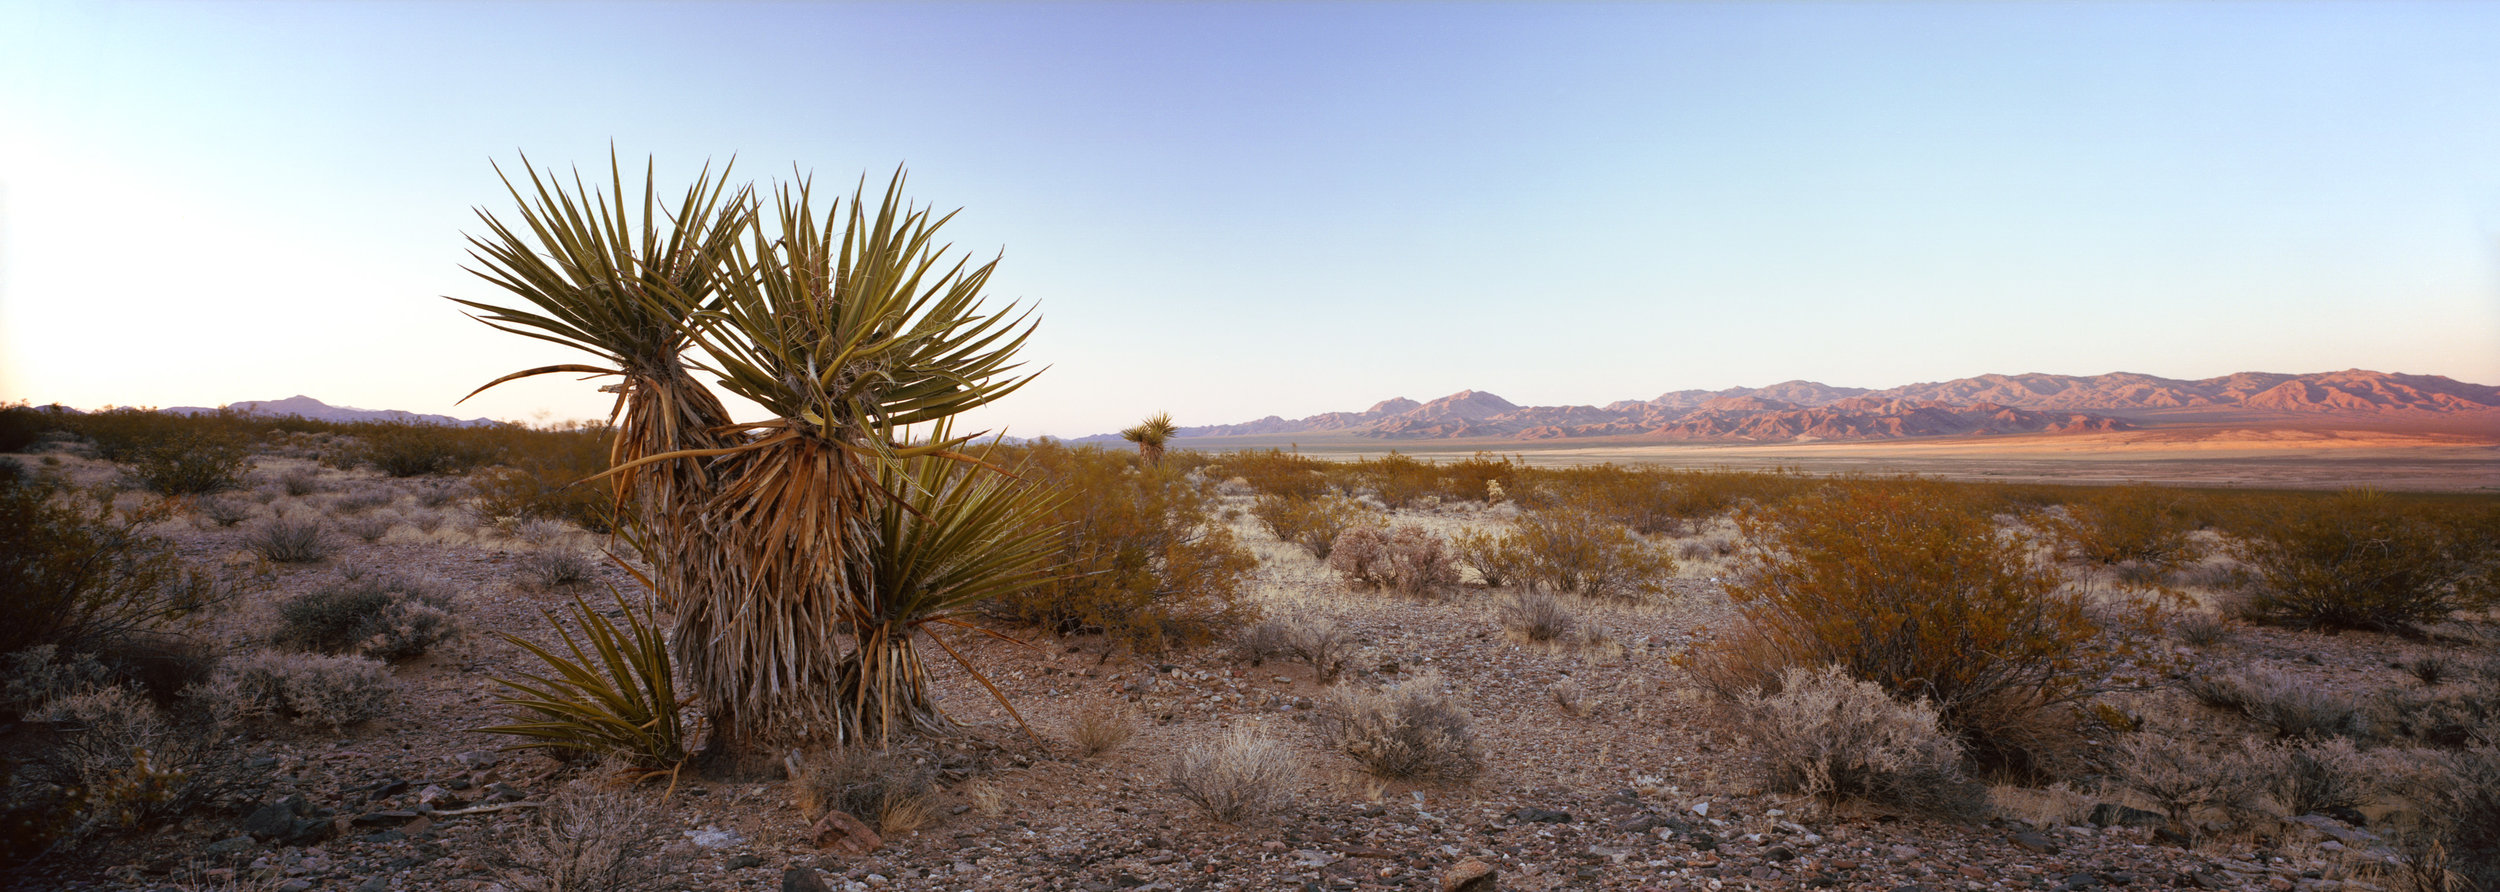 Nevada-California border at sunset, in Mojave National Preserve.  Ektar 100, 4 sec, f/22.